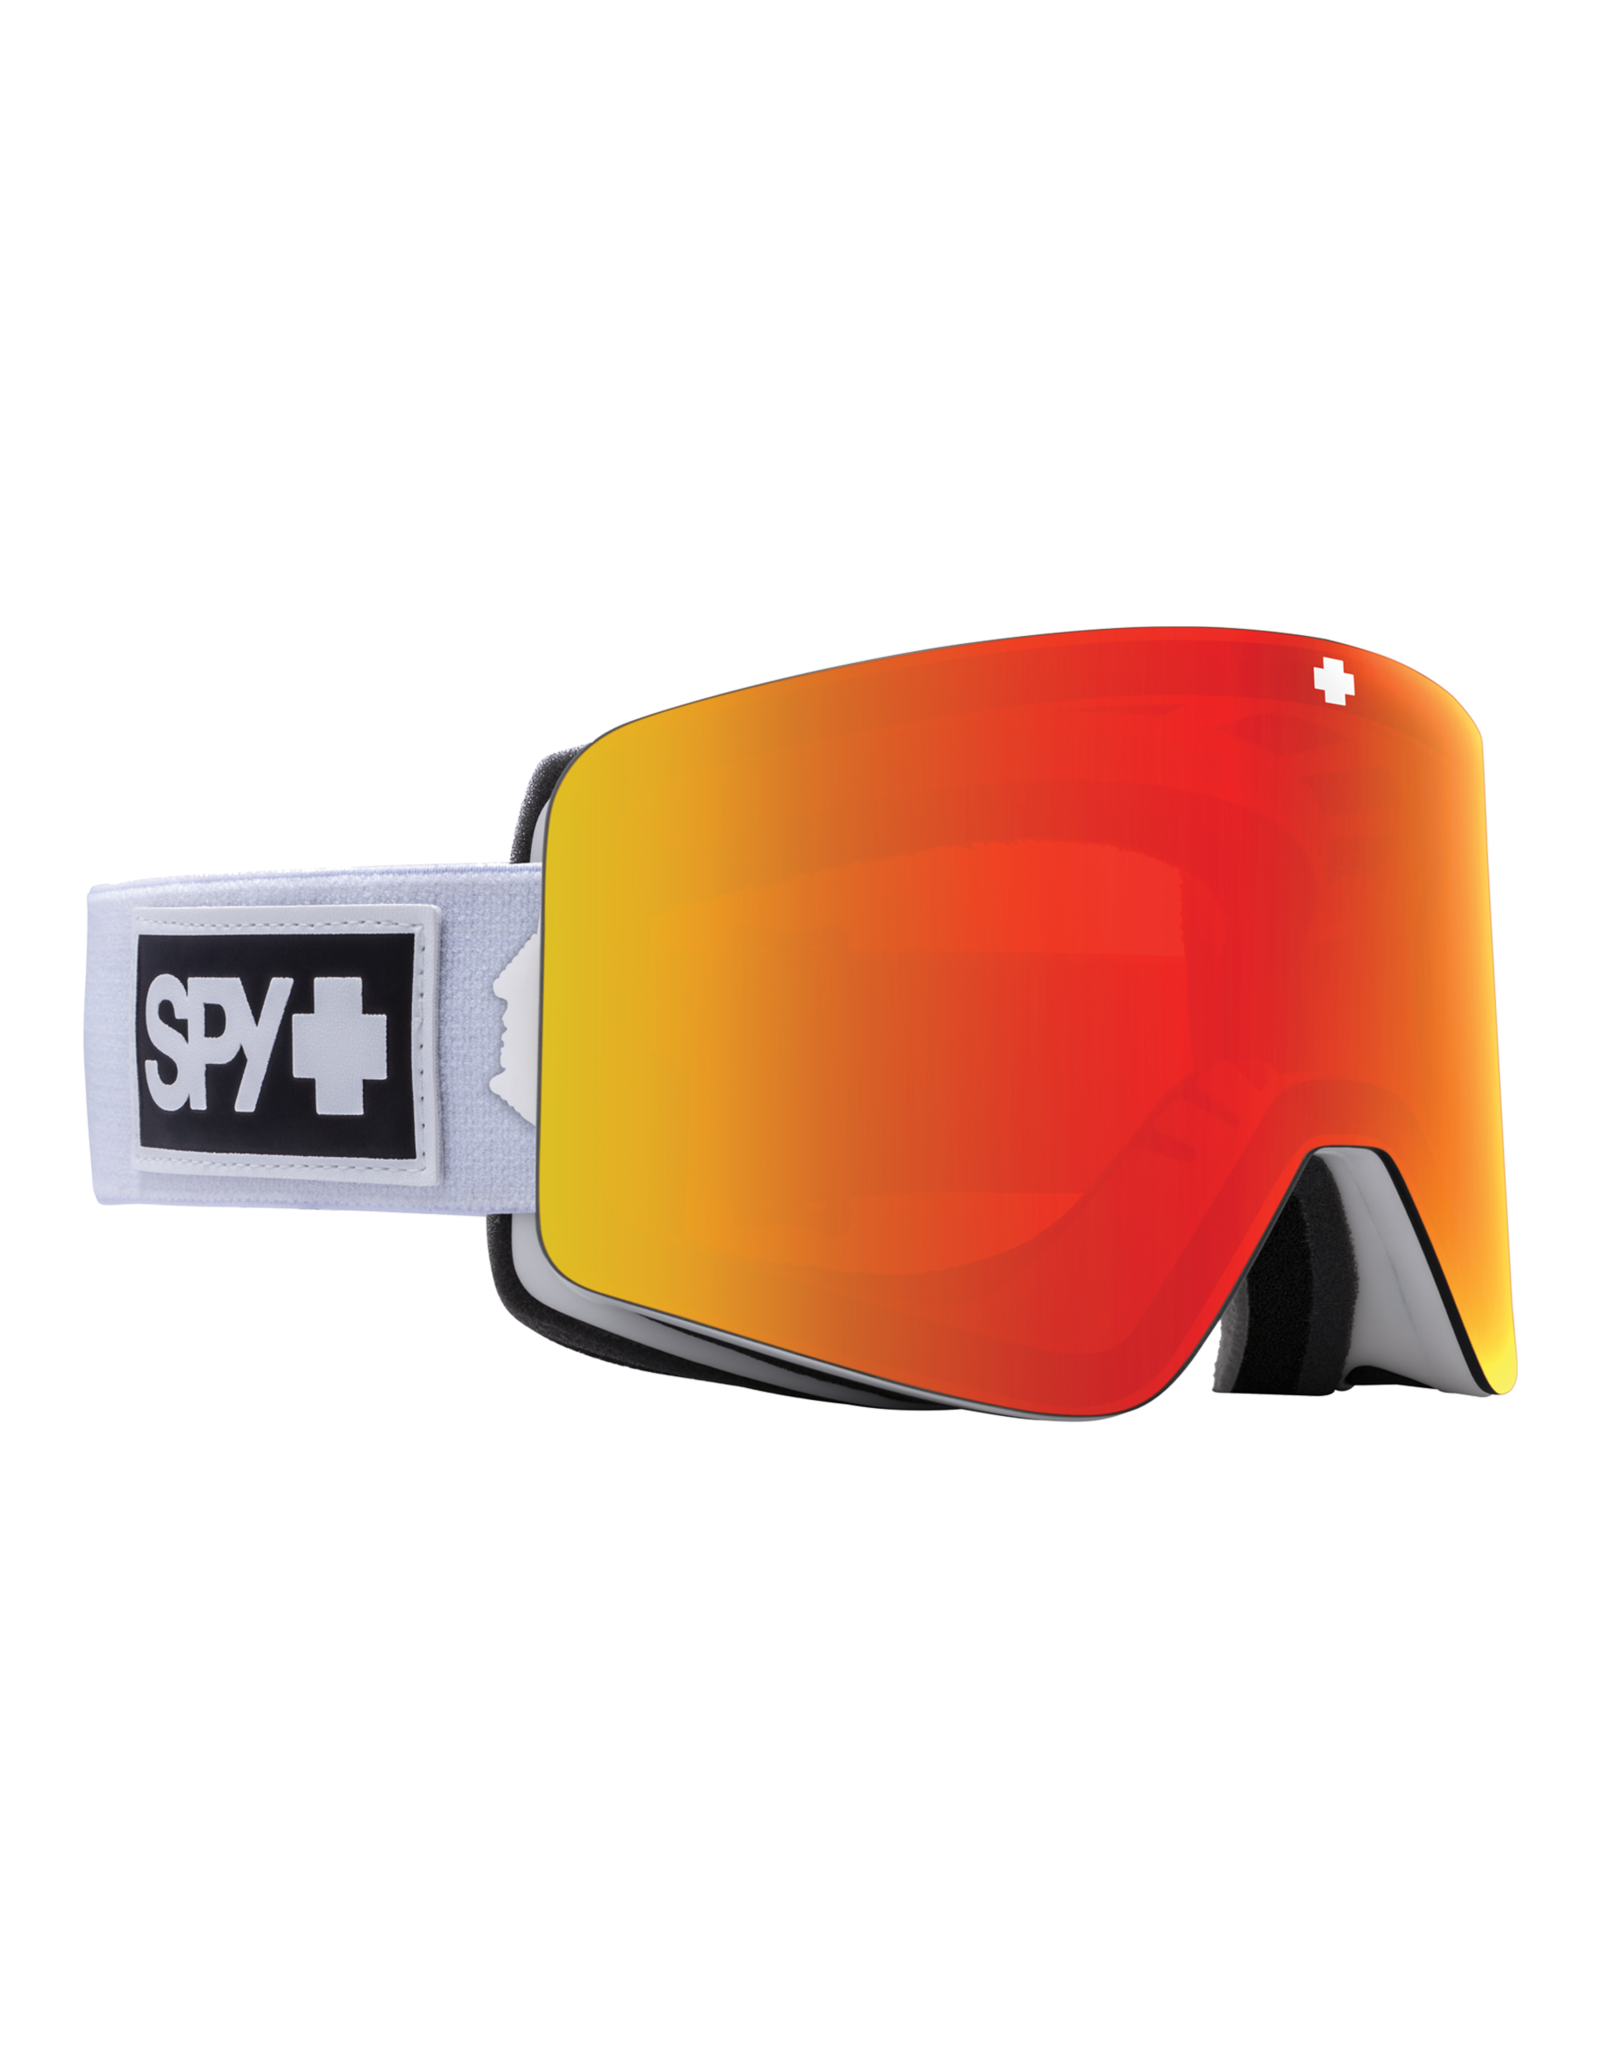 SPY Marauder Matte White w/HD Plus Bronze/Red Spectra Mirror and HD Plus LL Yellow/Green Spectra Mirror W21